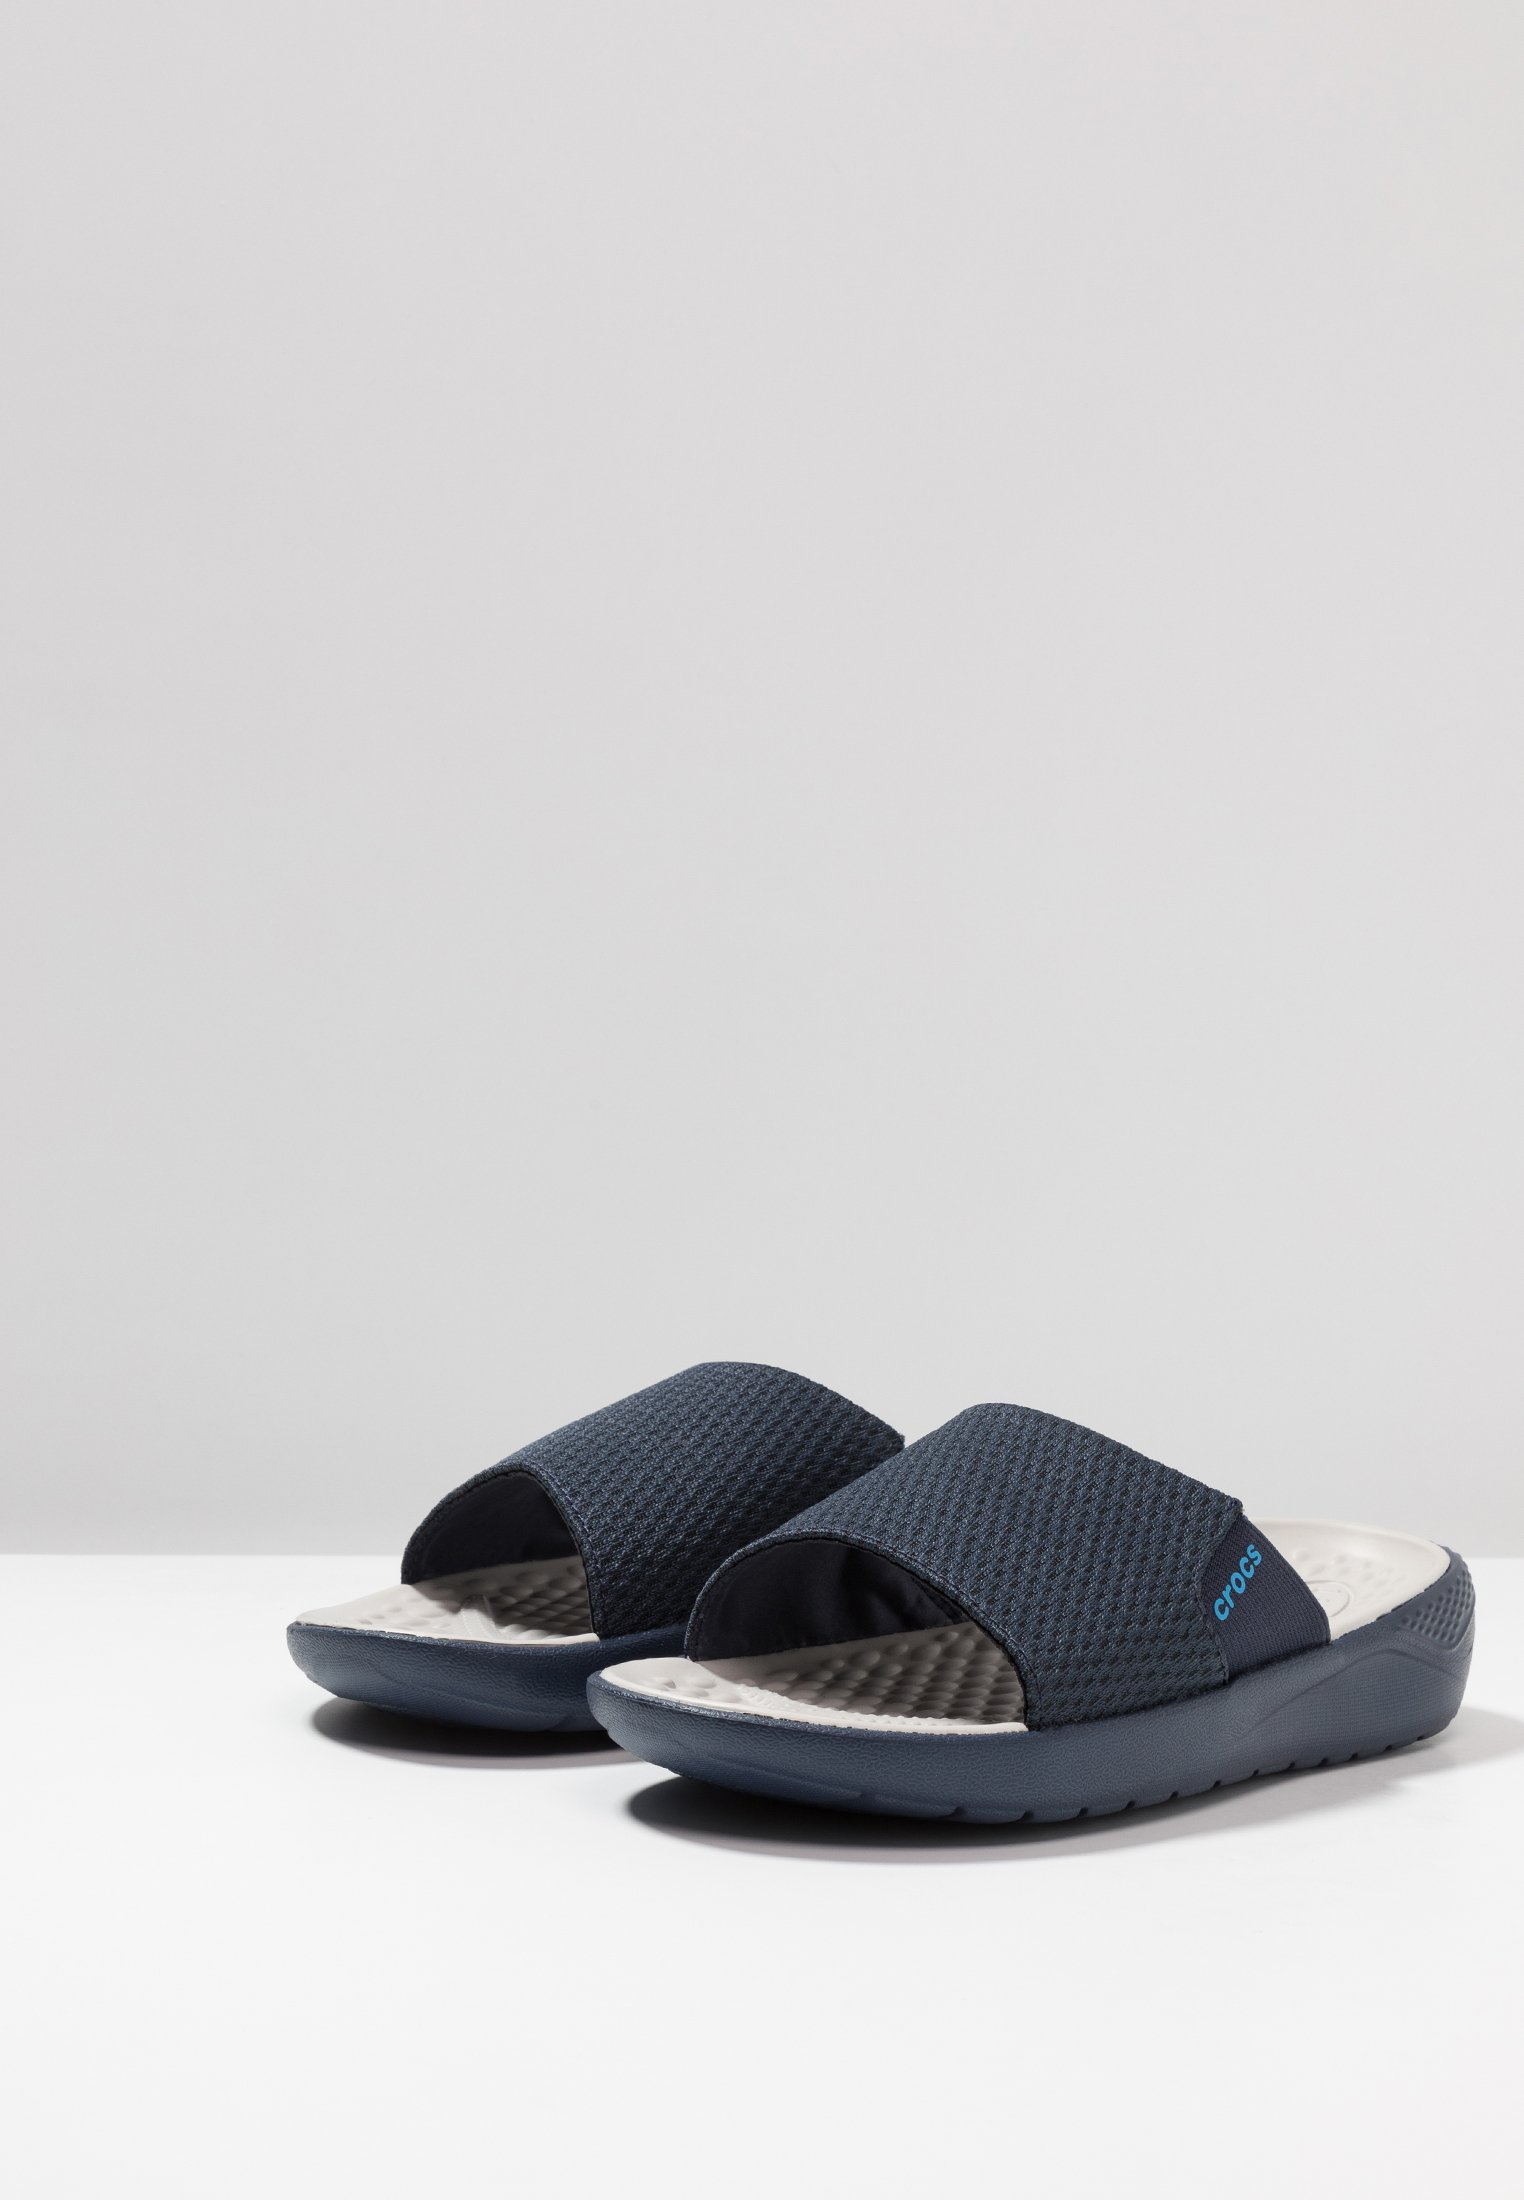 Crocs LITERIDE MESH SLIDE RELAXED FIT - Mules navy/pearl white